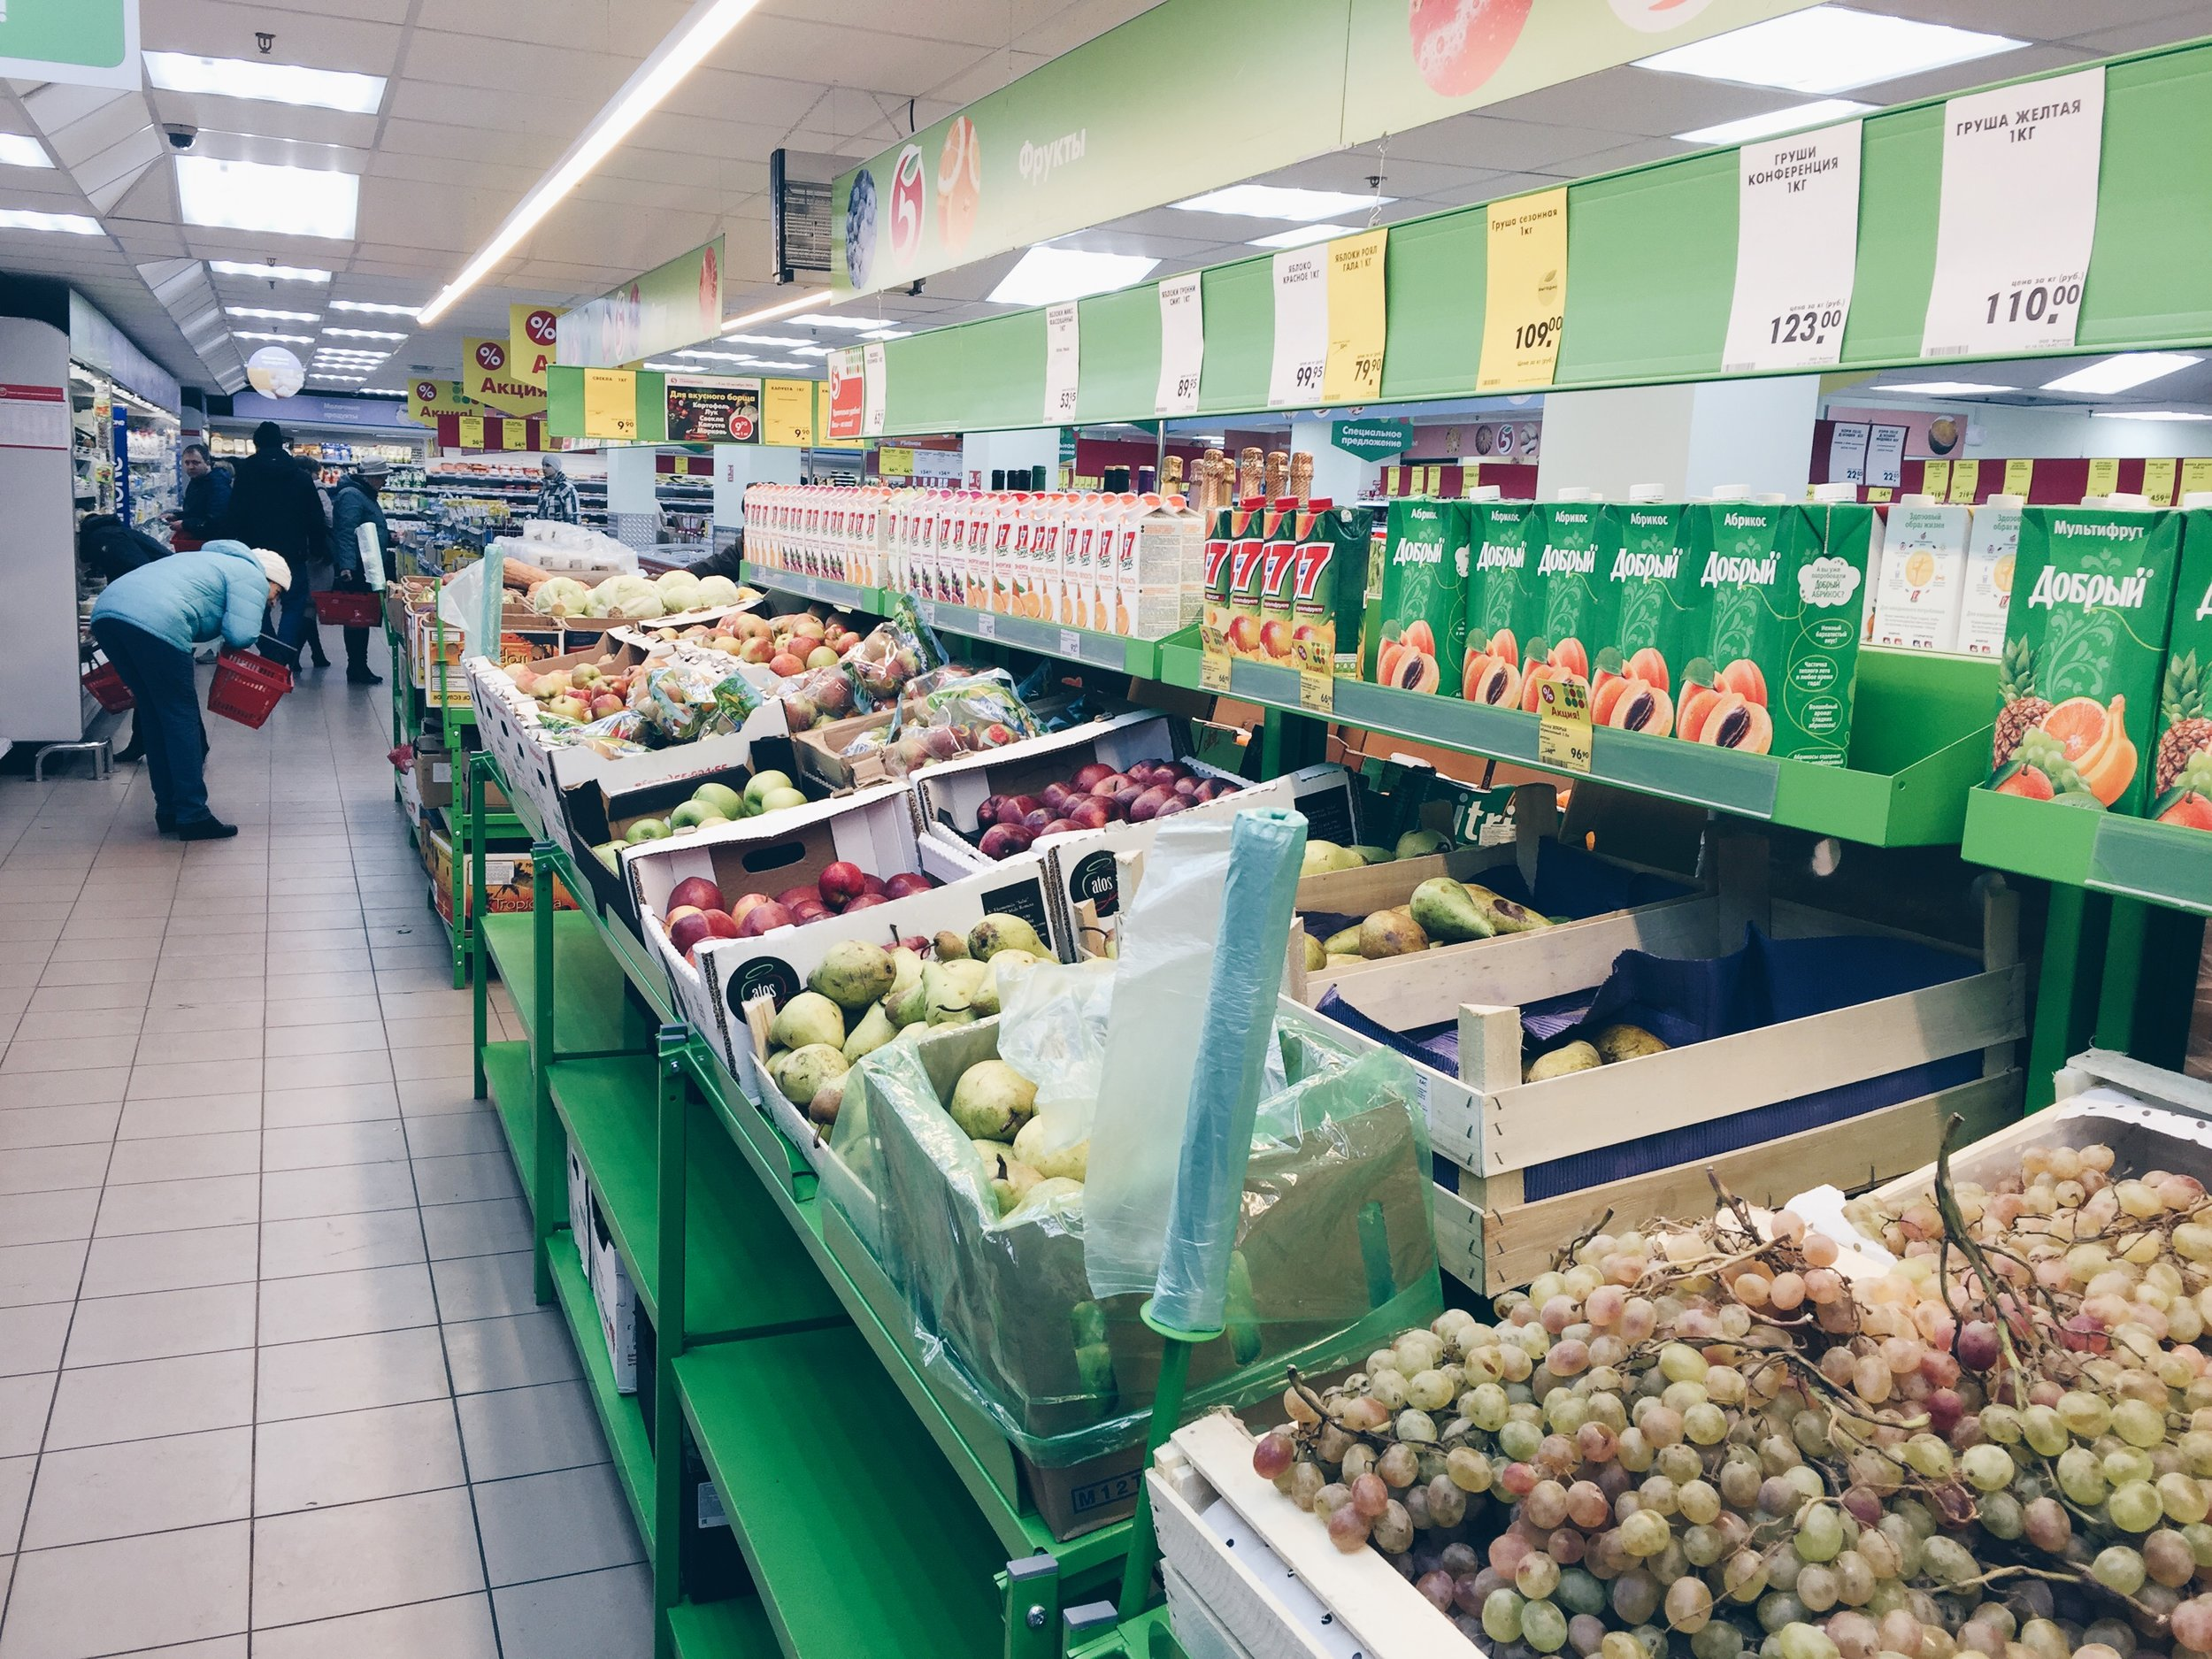 Fruit and vegetable selection at the nearby store.